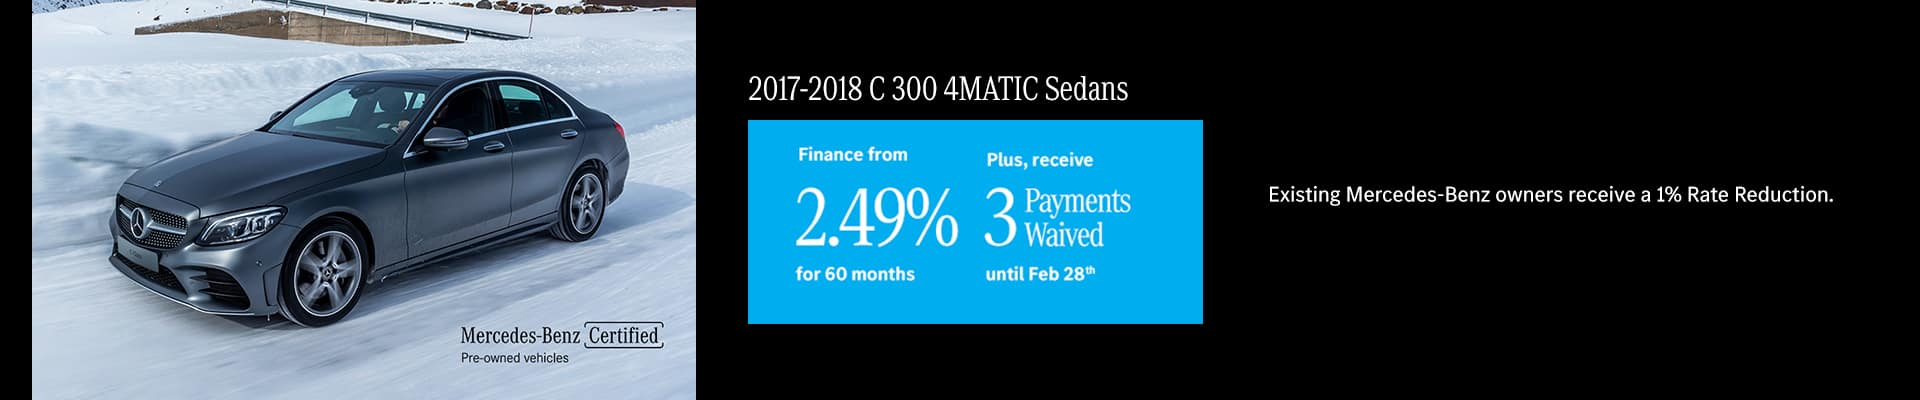 2017-2018 C 300 4MATIC Sedans: Financing from 2.49% for 60 months with a 3 month payment waiver.